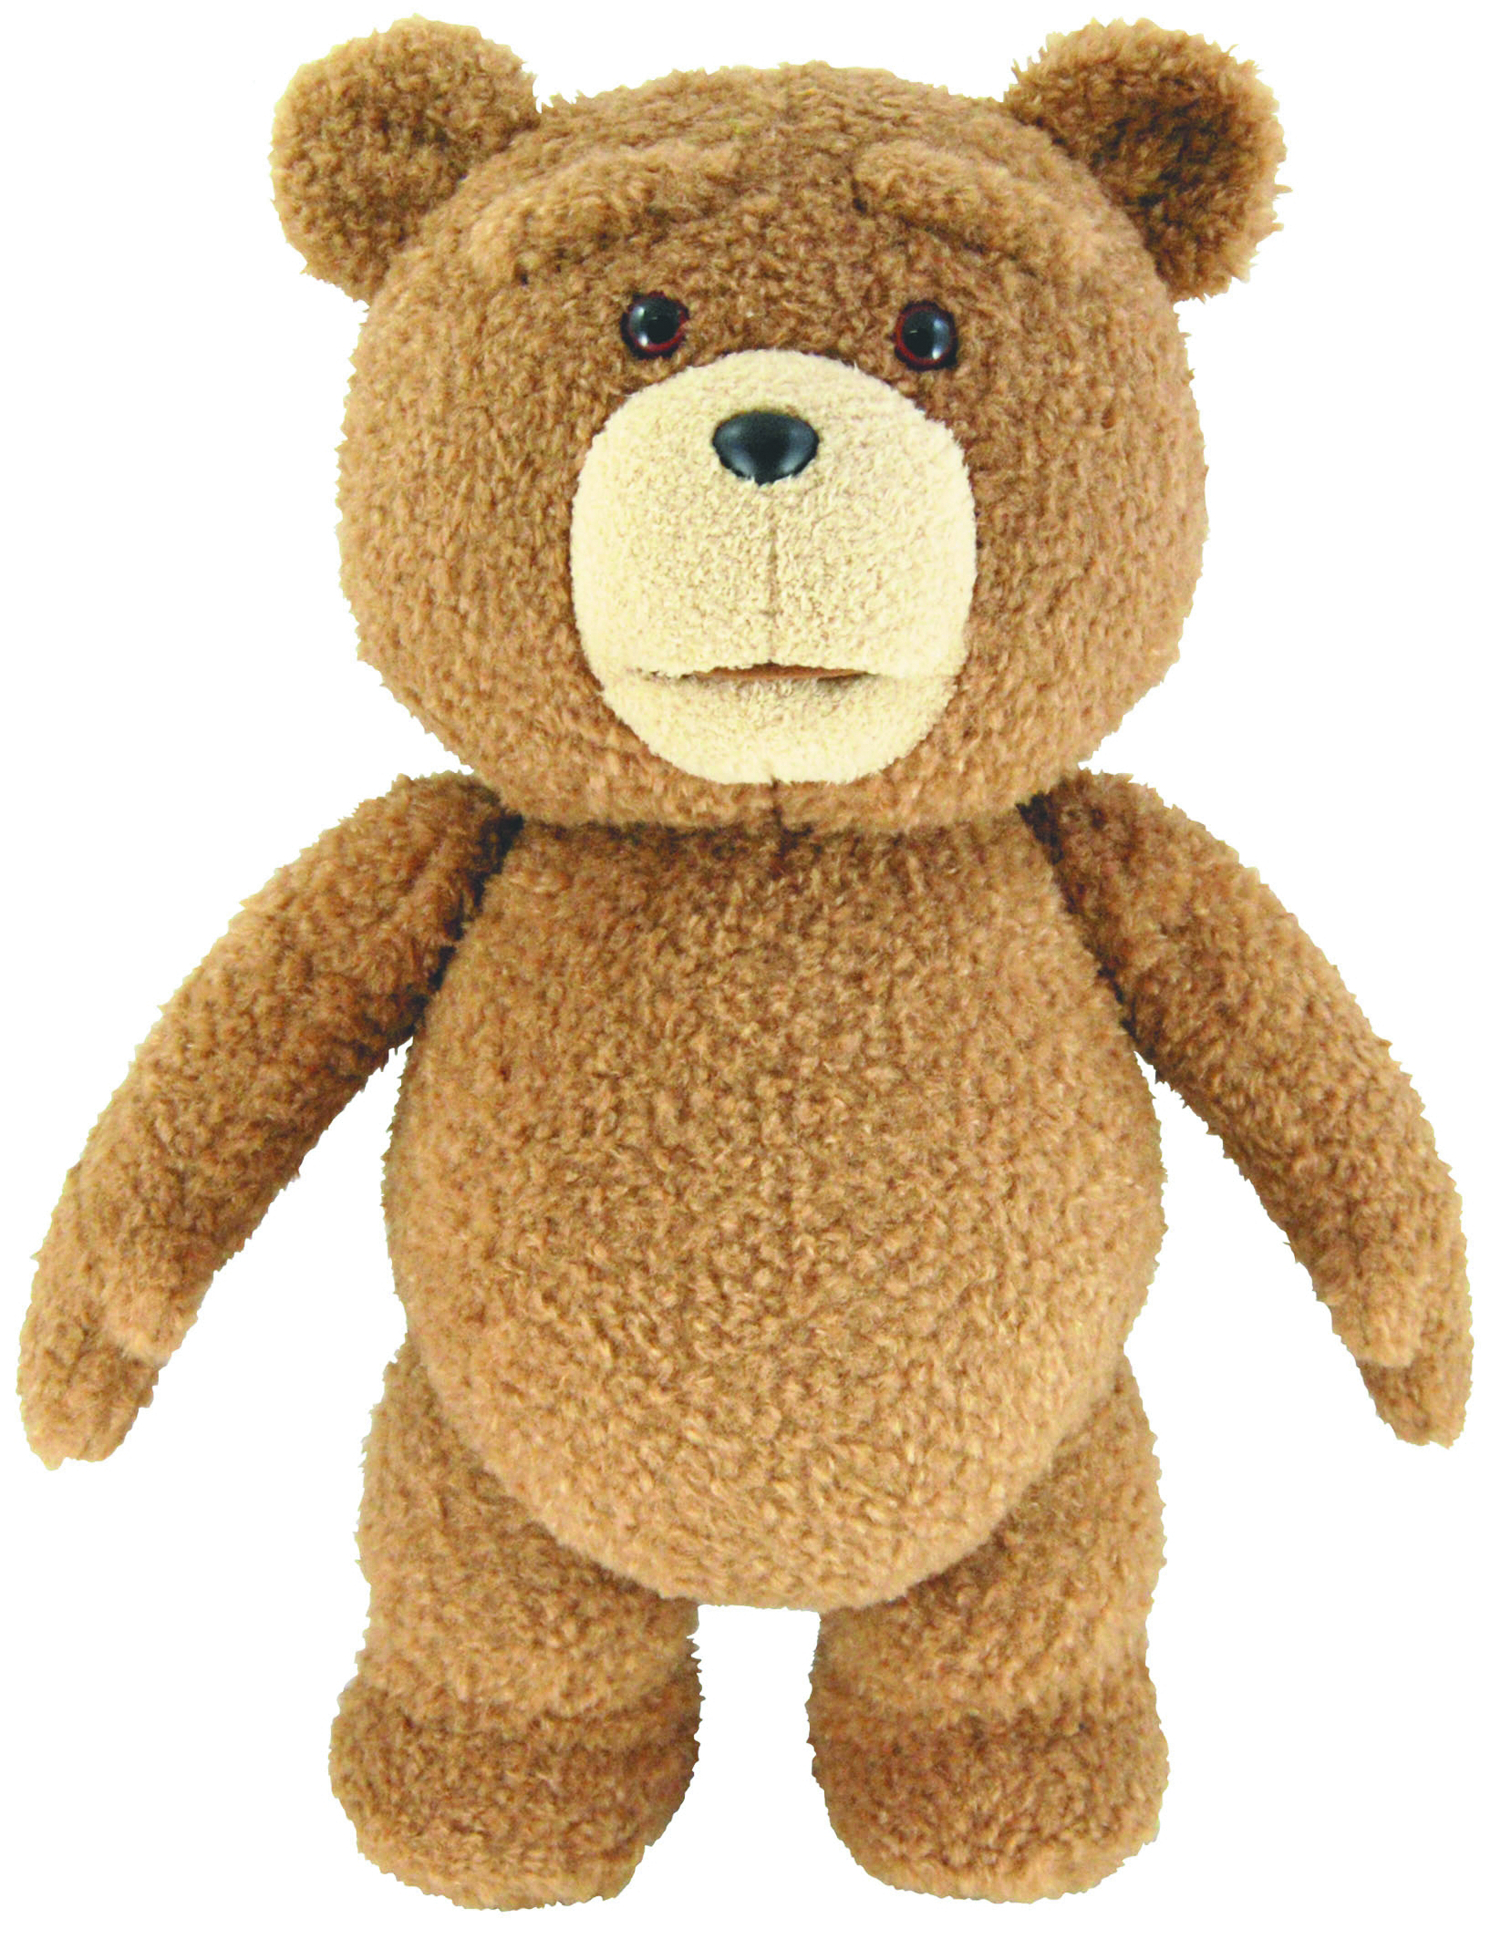 SETH MACFARLANE TED 16-IN PLUSH W/SOUND